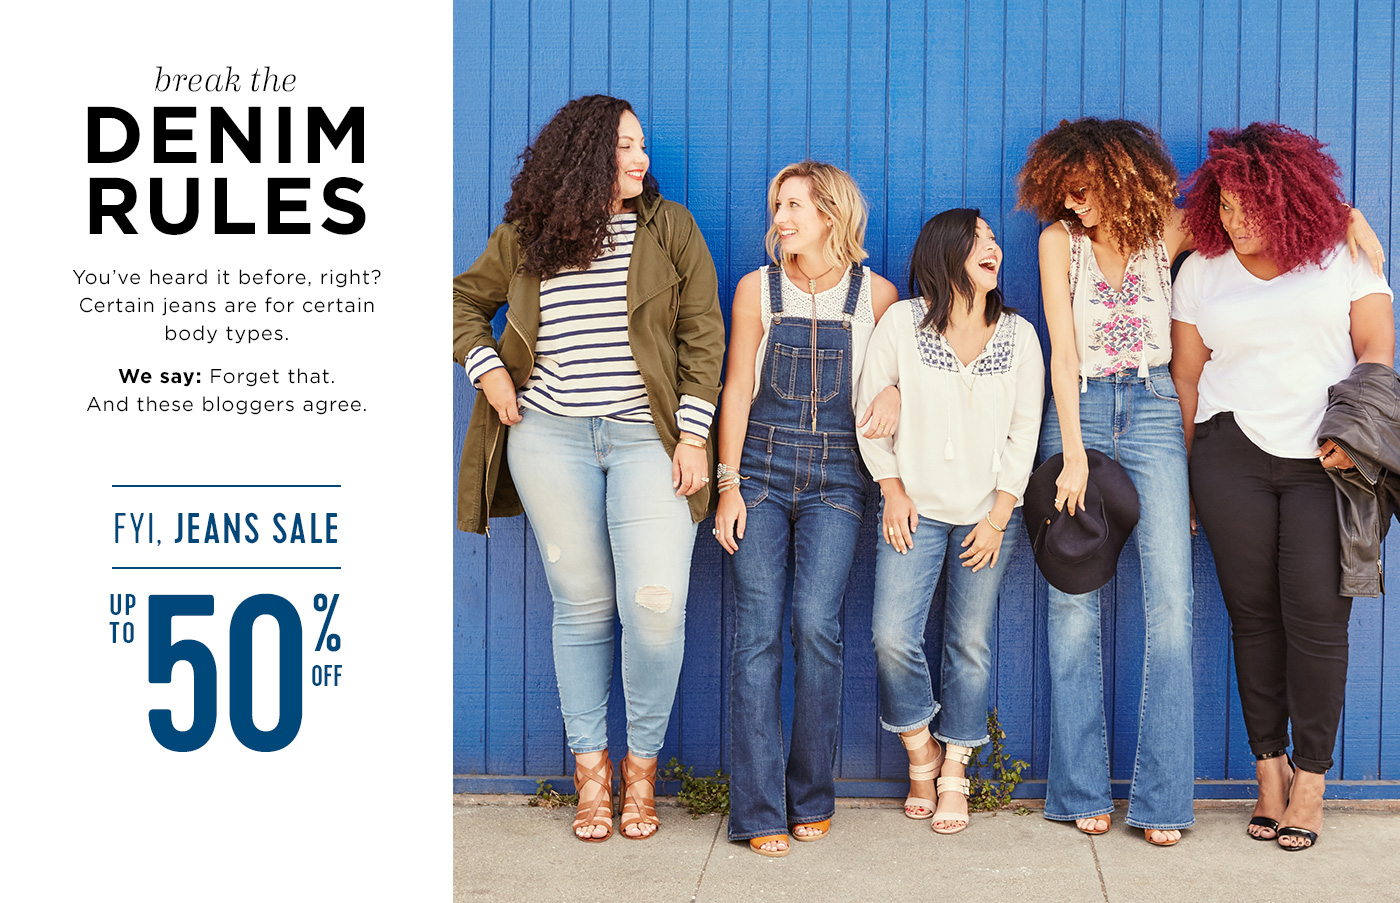 Old Navy Denim Campaign